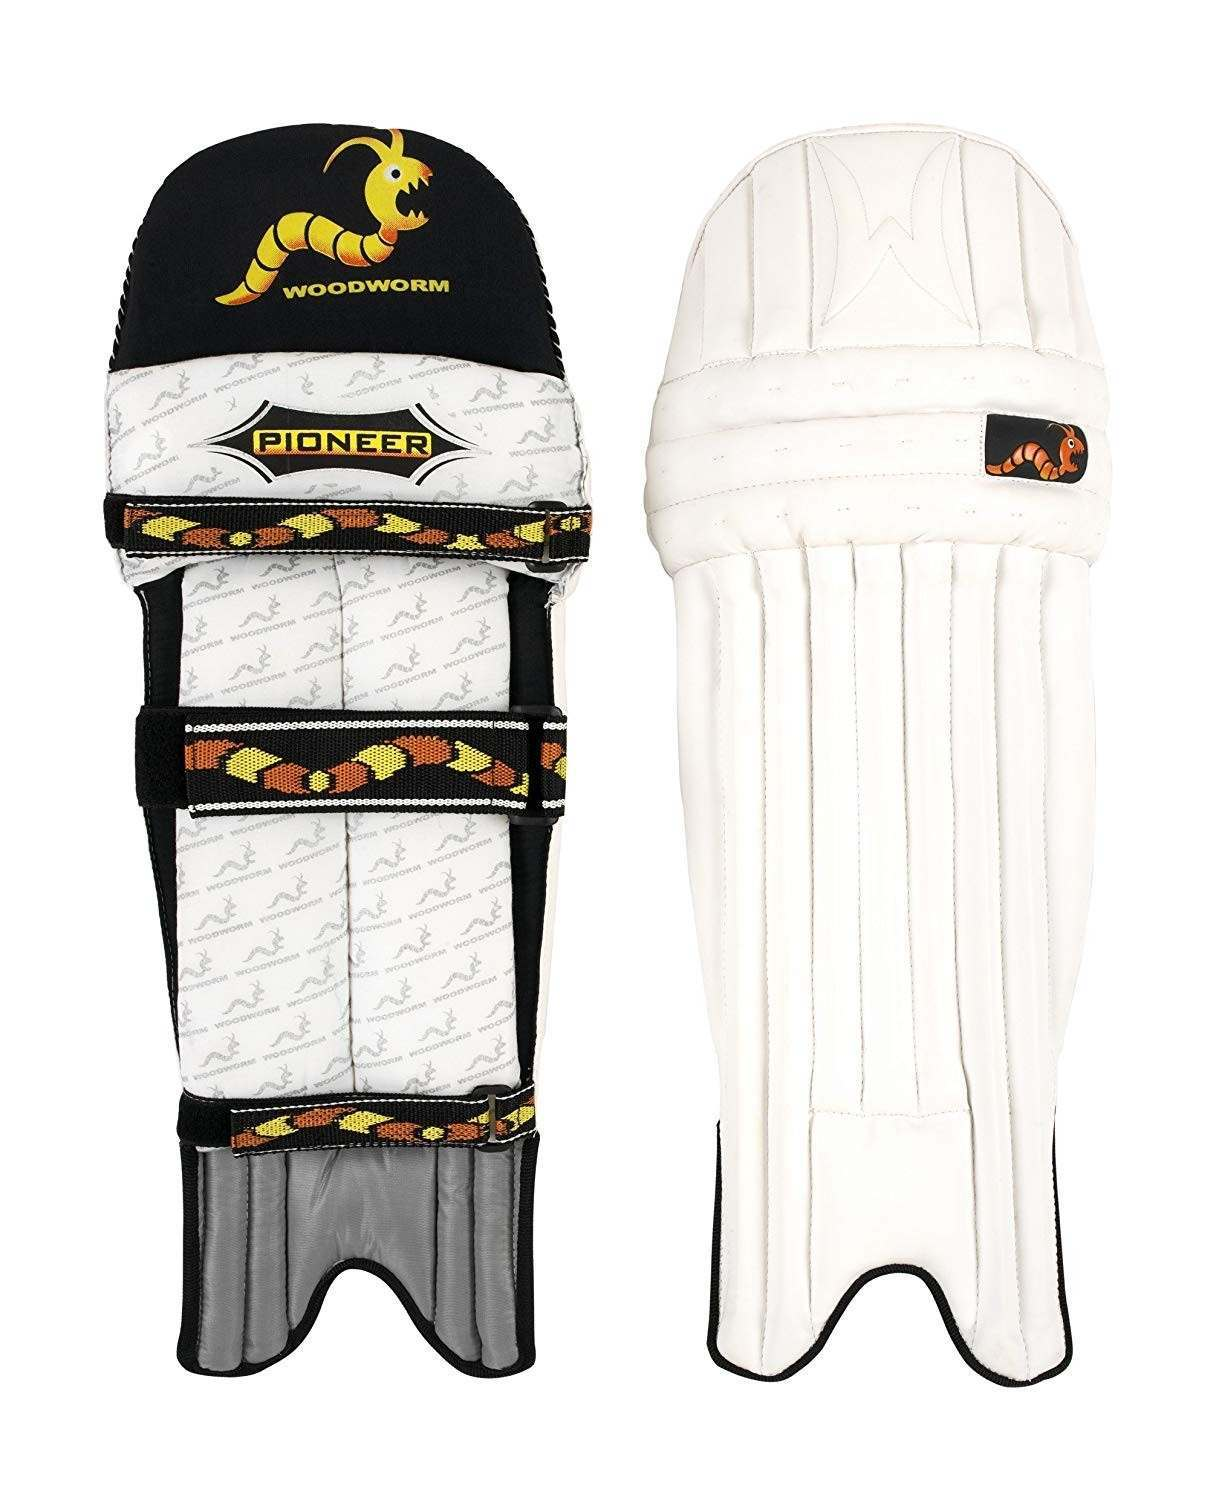 Woodworm Cricket Pioneer Batting Pads - Ambidextrous